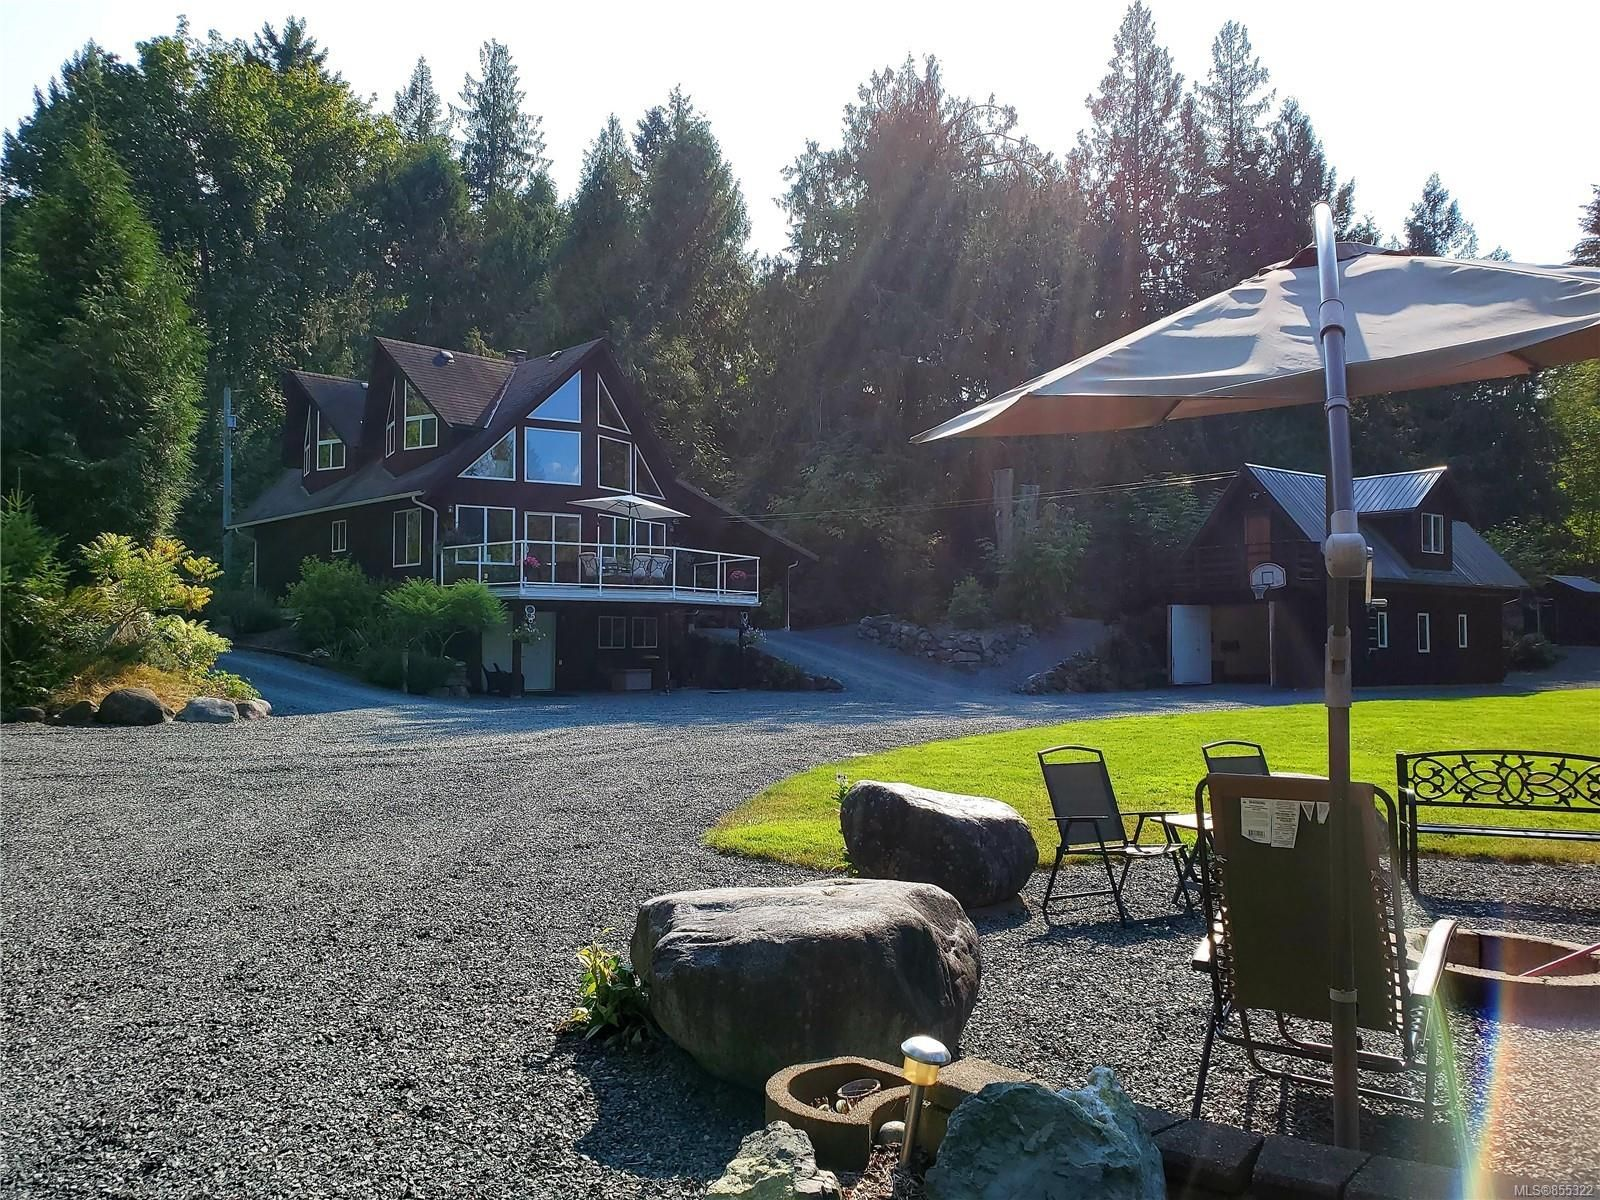 Main Photo: A 7359 Rincon Rd in : PA Sproat Lake House for sale (Port Alberni)  : MLS®# 855322